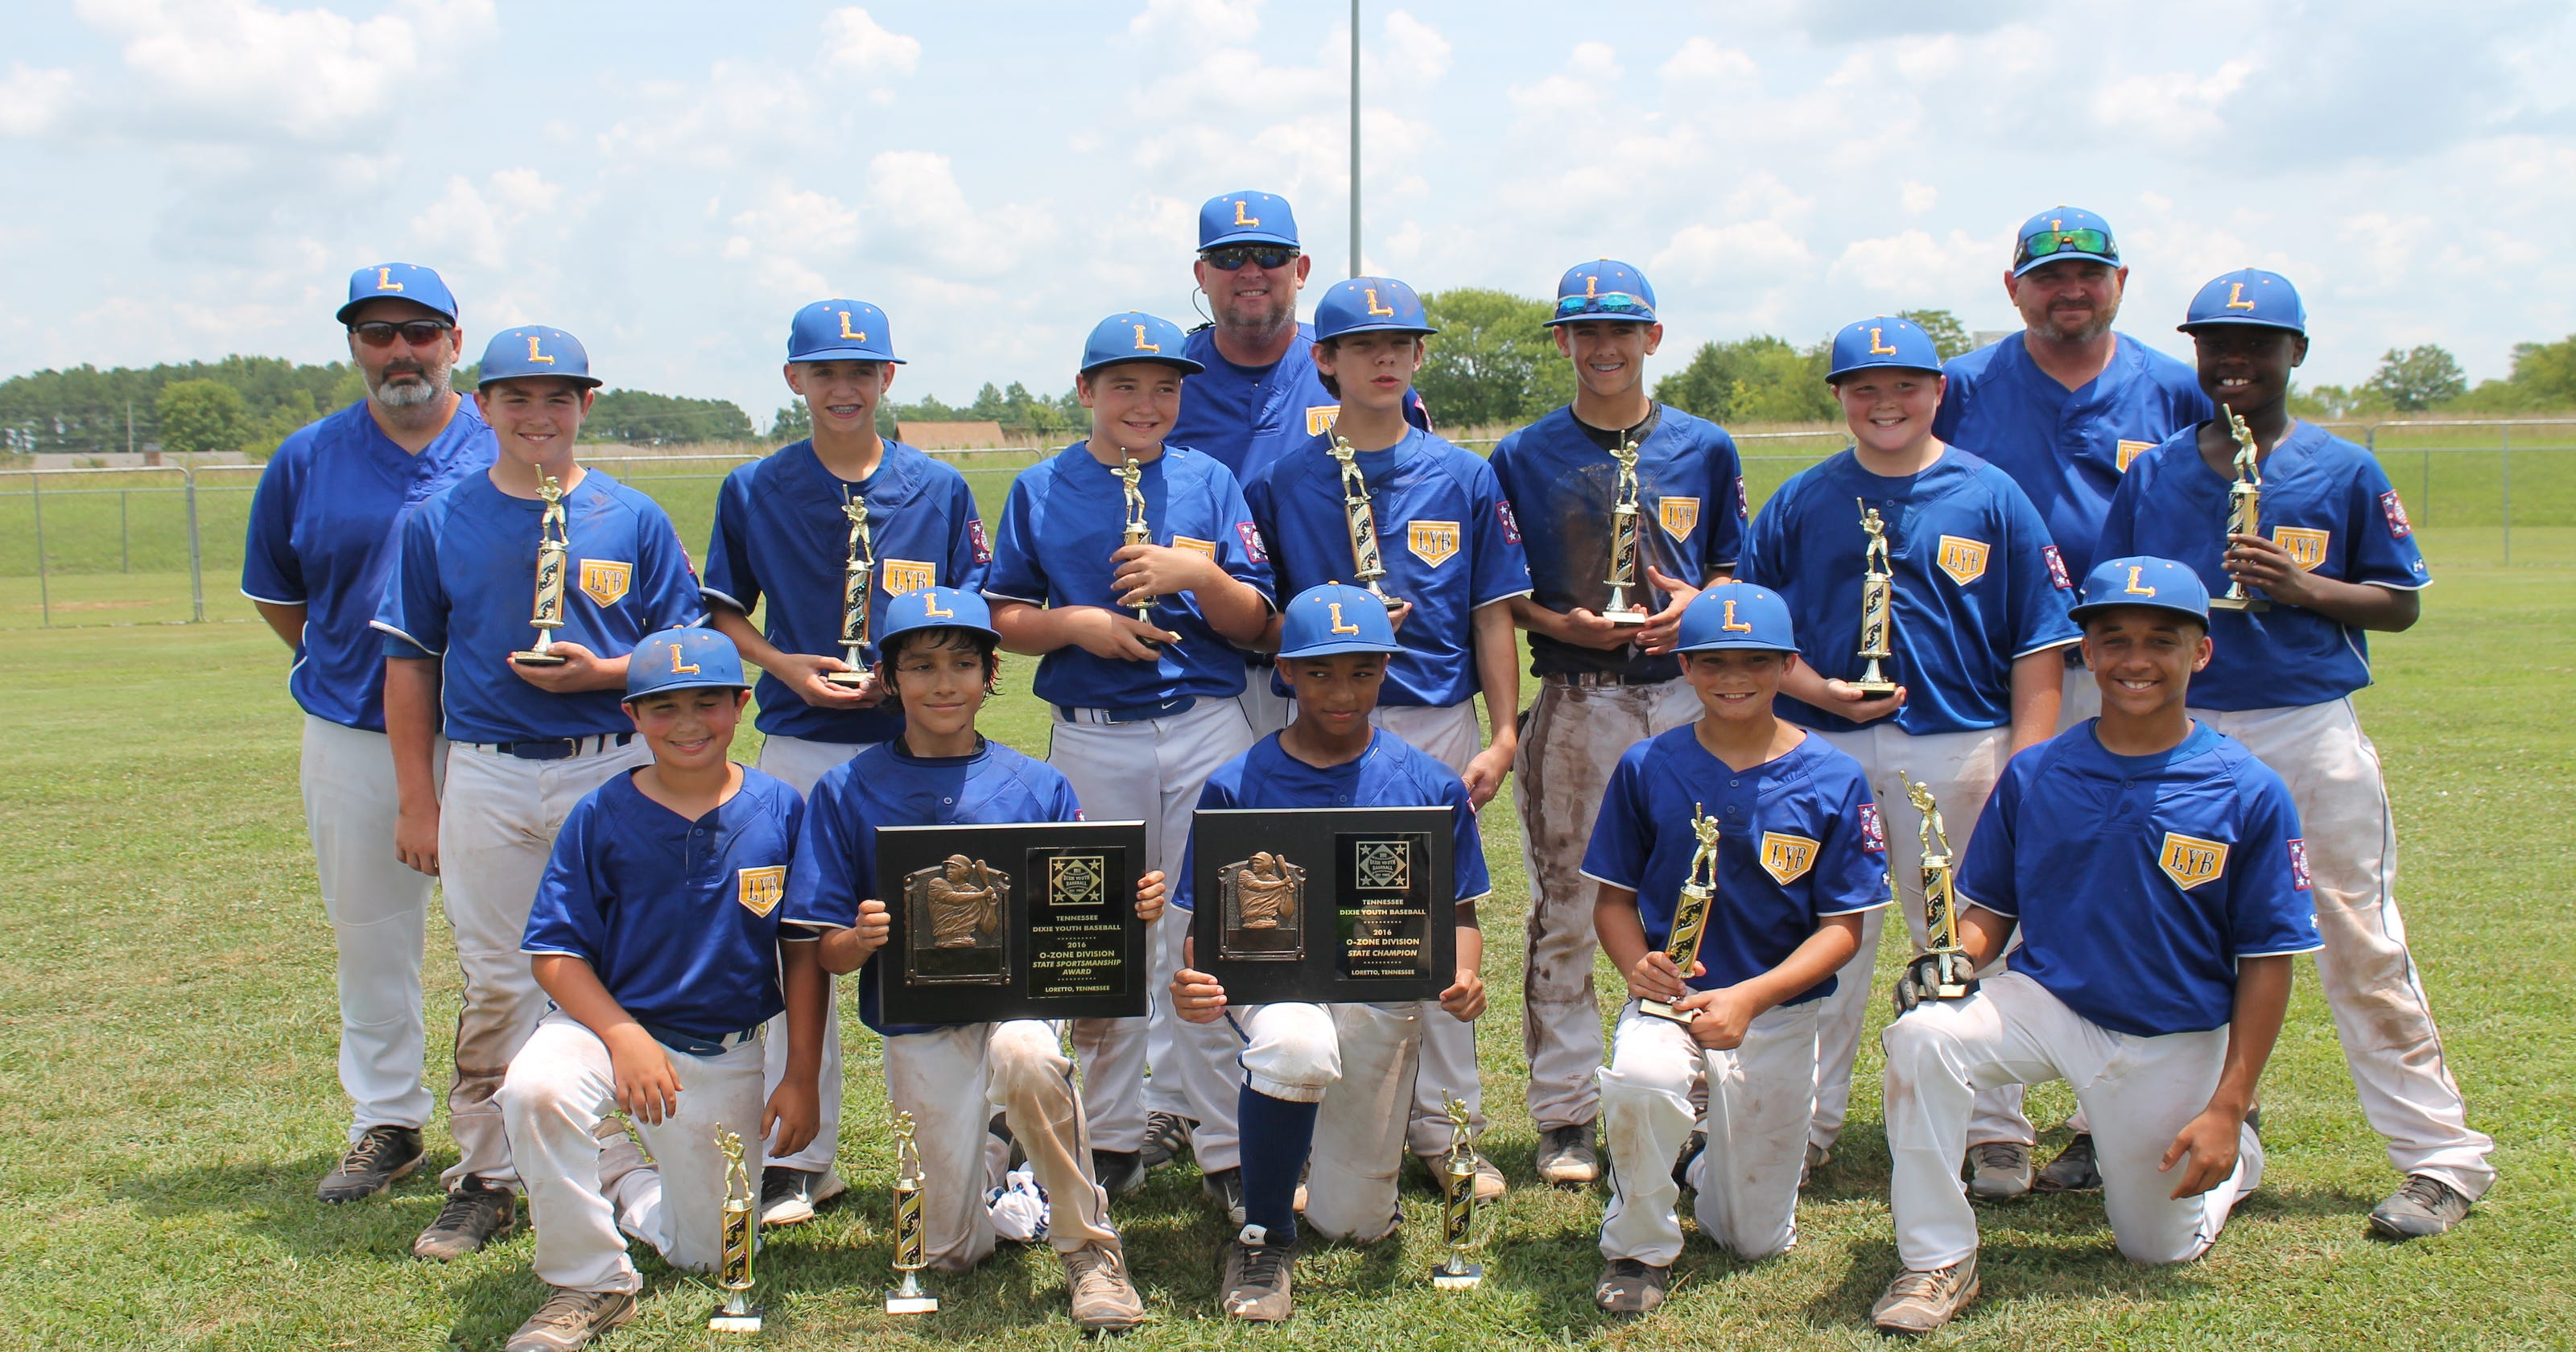 Lebanon 11-12 baseball team advances to World Series